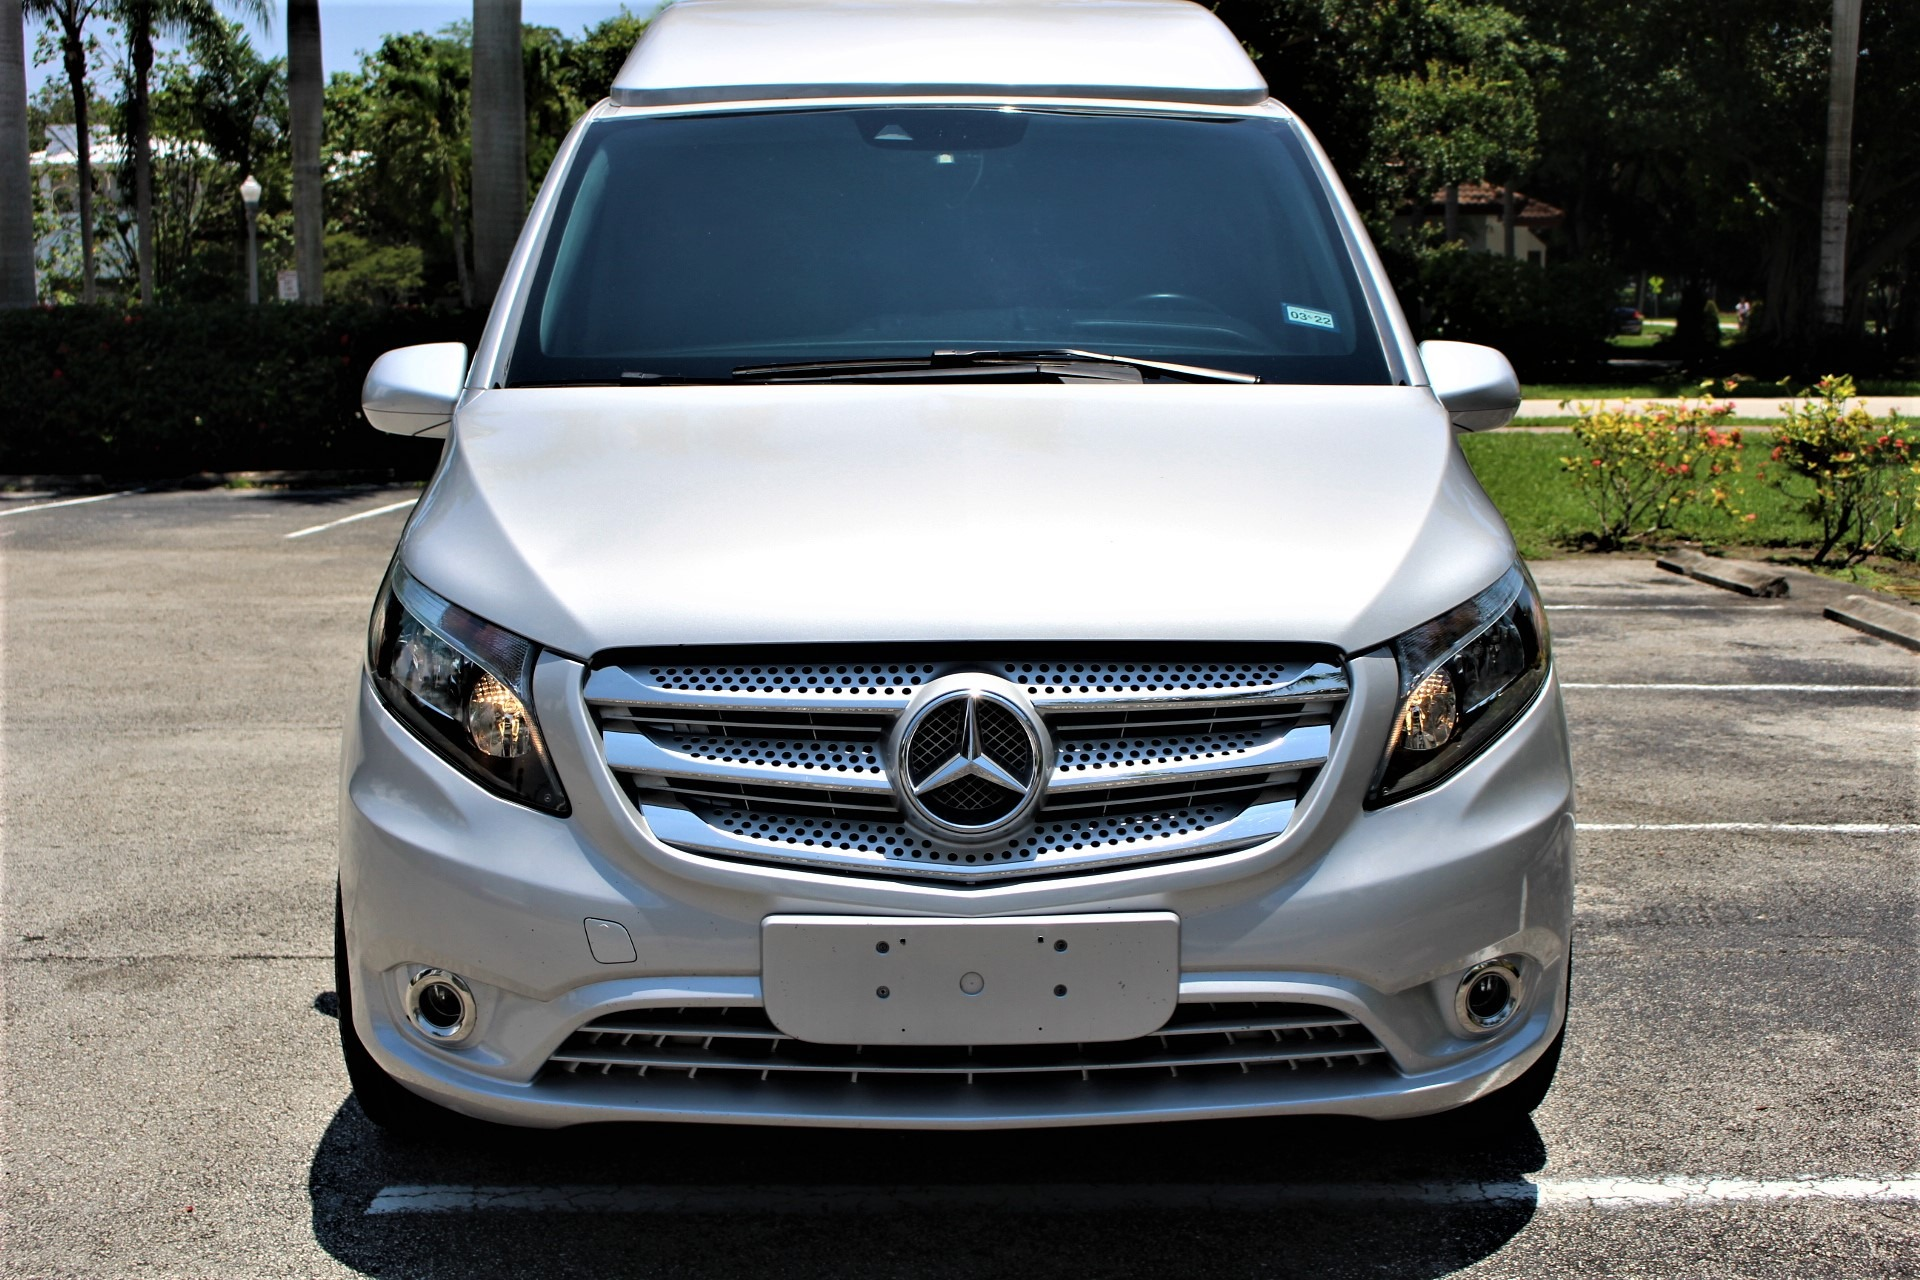 Used 2016 Mercedes-Benz Metris Passenger Custom for sale Sold at The Gables Sports Cars in Miami FL 33146 4